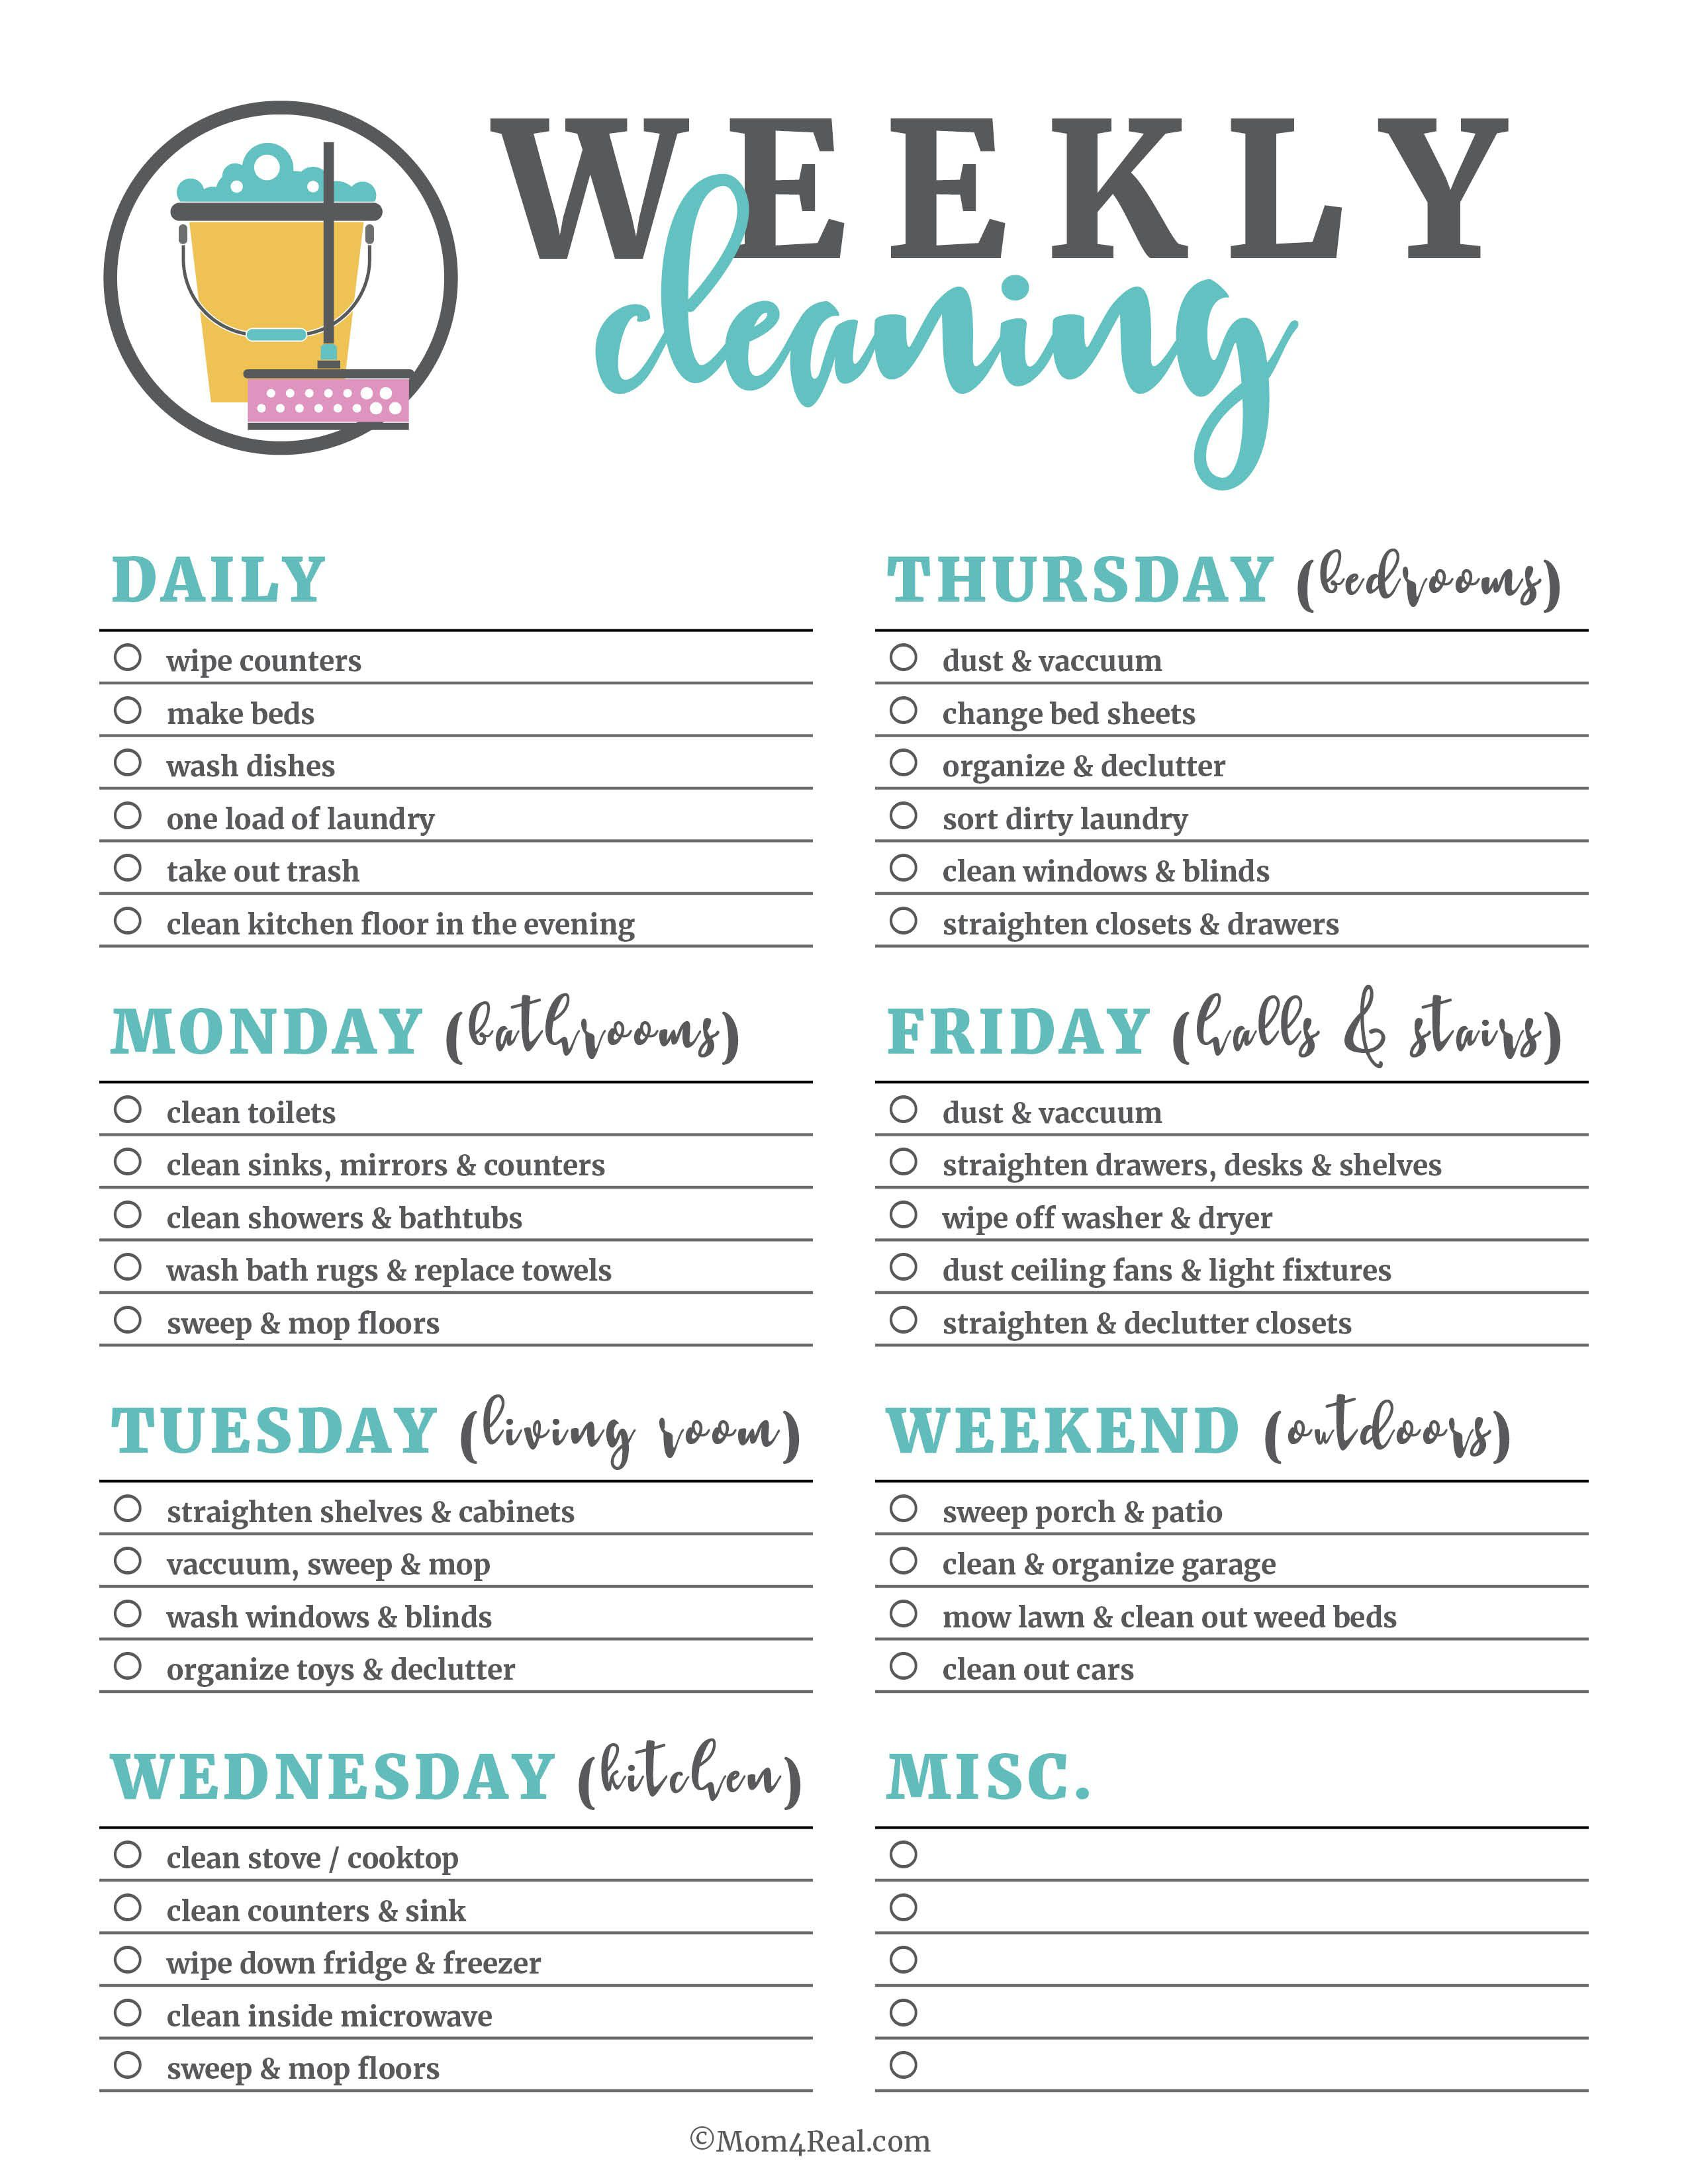 003 Incredible Weekly Cleaning Schedule Format High Definition  Template Free SampleFull